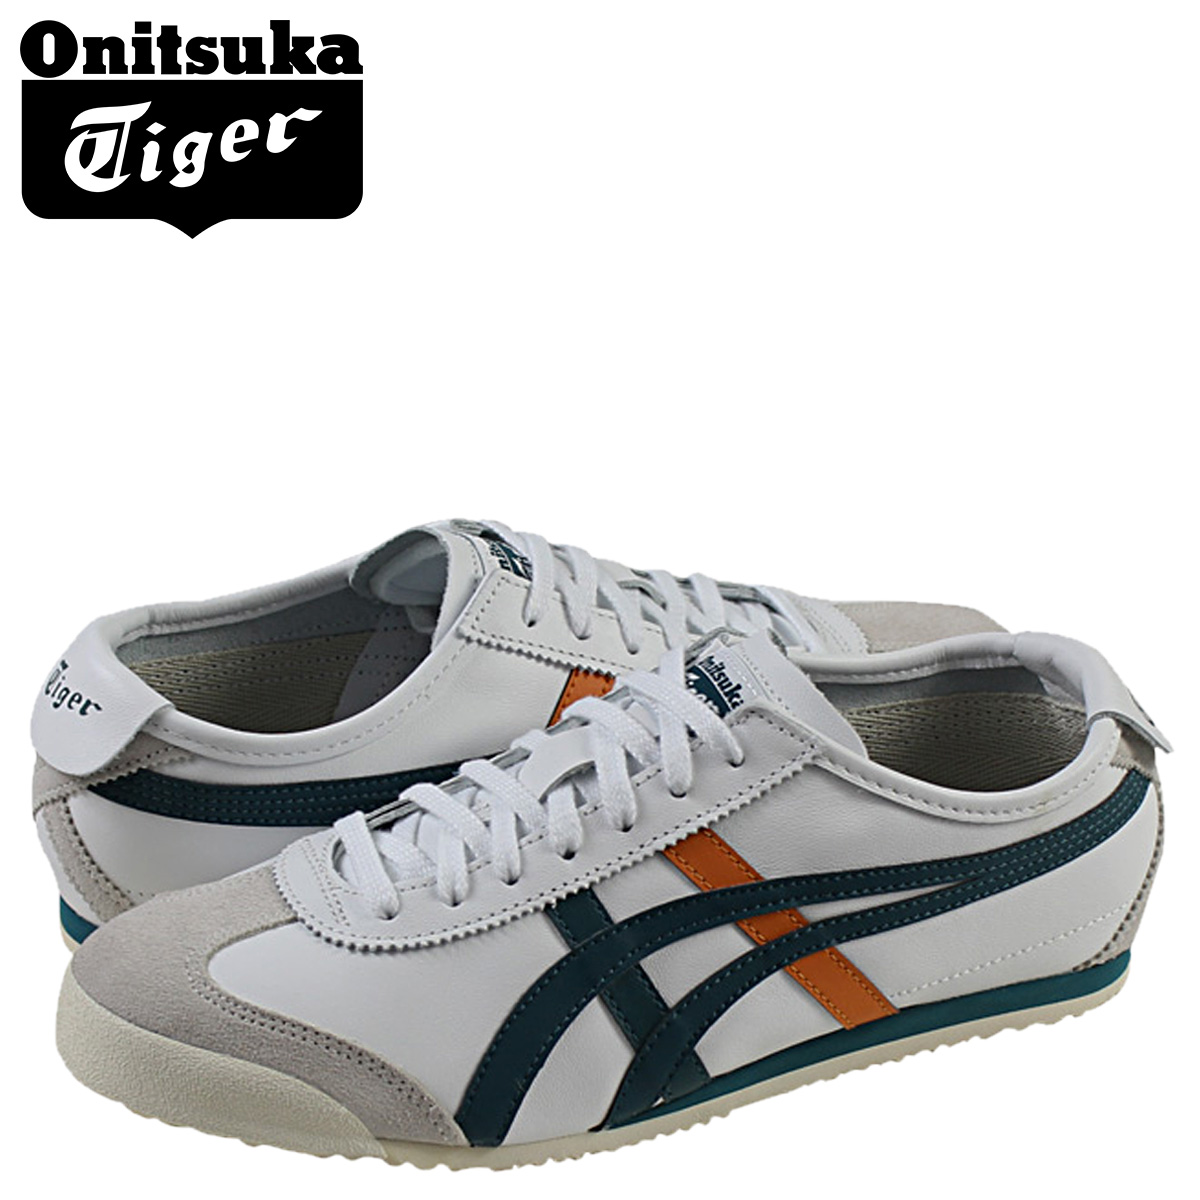 best website 5ae9b c08cc Onitsuka Tiger asics ONITSUKA Tiger ASICs Mexico 66 sneaker MEXICO 66 TH4J  2L-0180 men's women's shoes white